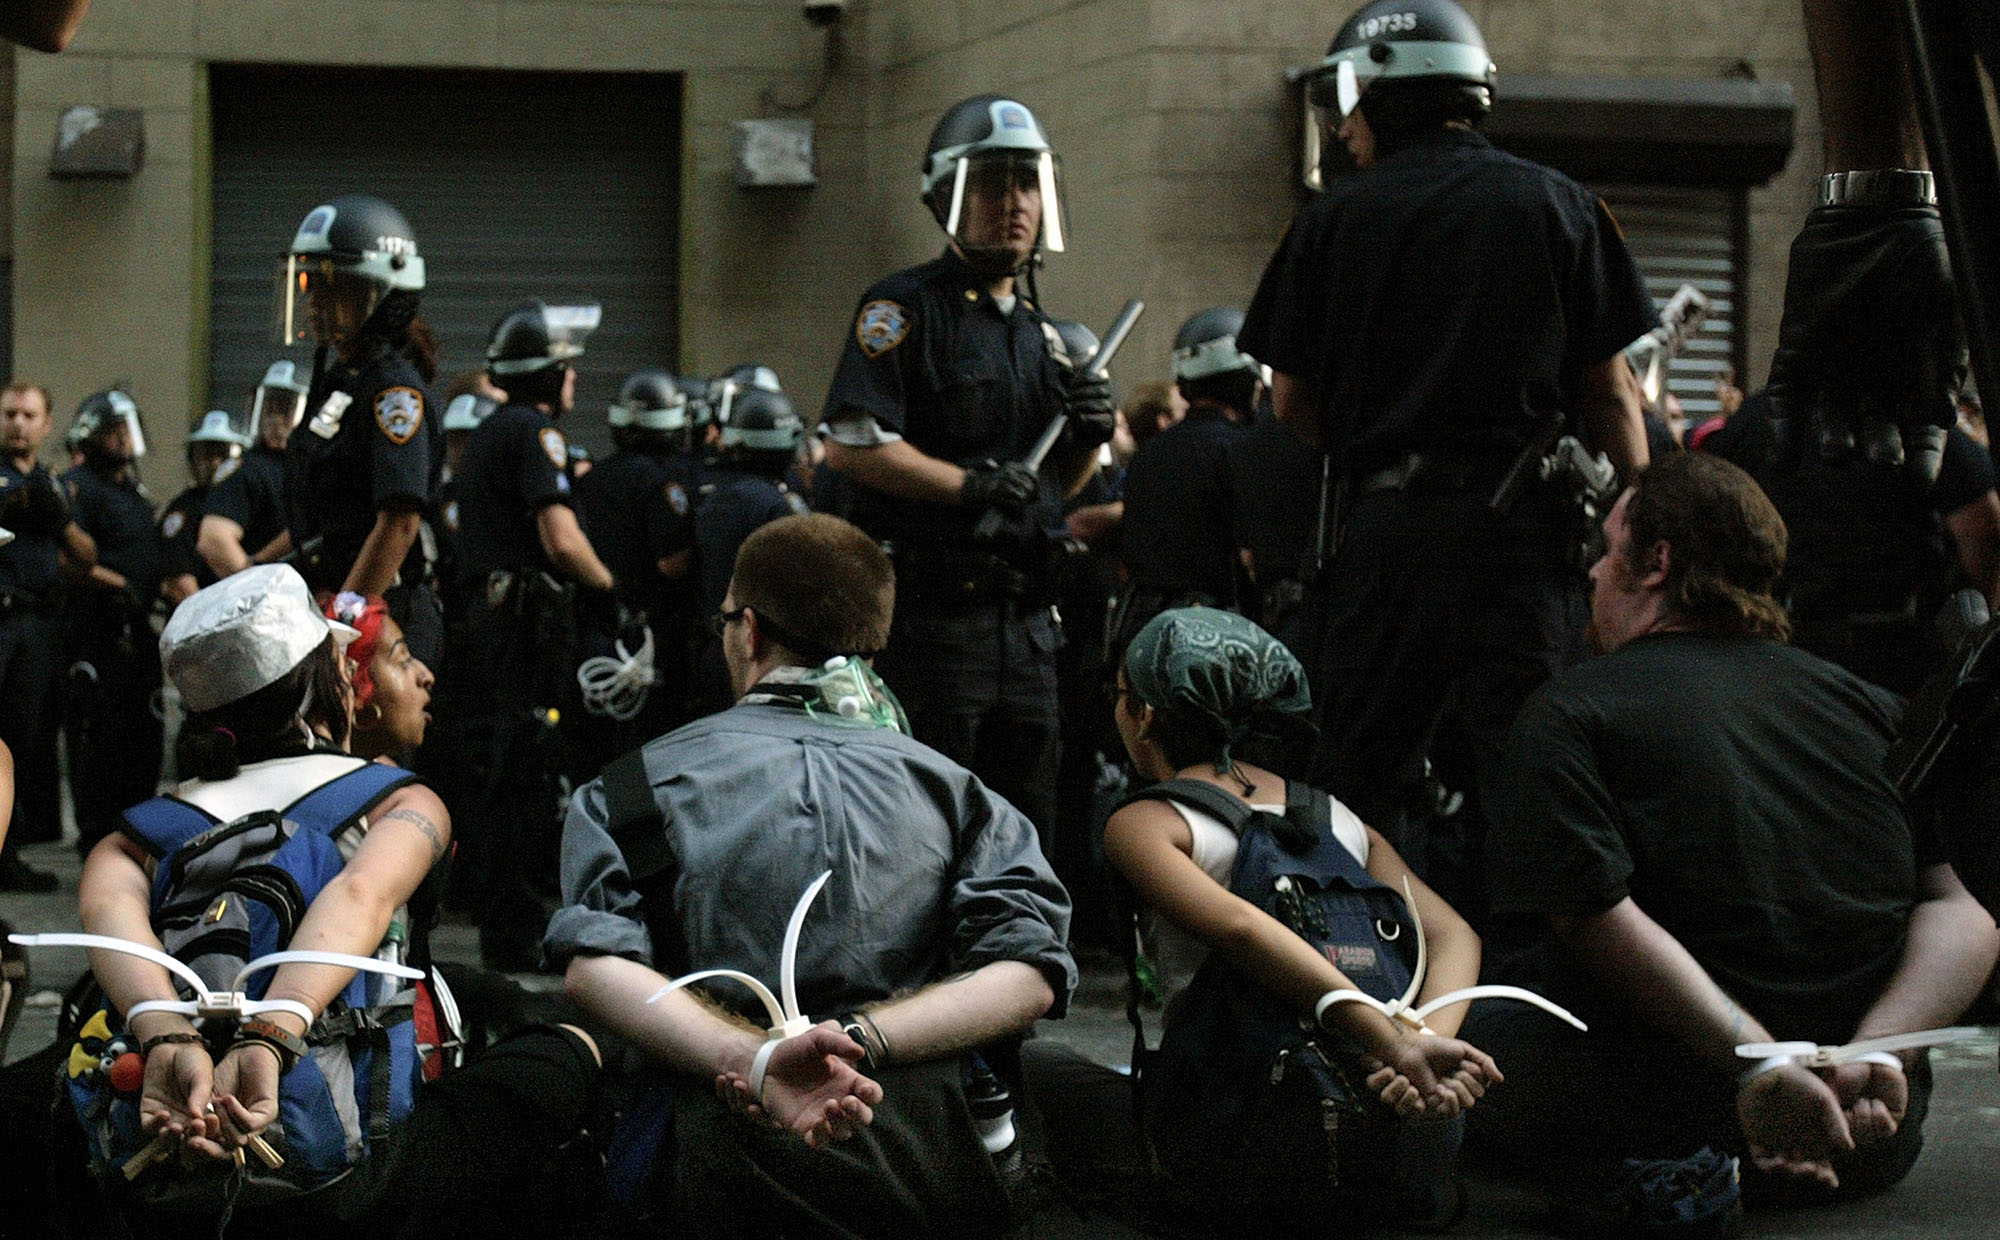 NEW YORK - AUGUST 31:  Protesters are arrested at Union Square after attempting to march without a permit August 31,2004 in New York City. More than 260 people were arrested today, the second day of the Republican National Convention being held at Madison Square Garden.  (Photo by Paula Bronstein/Getty Images)